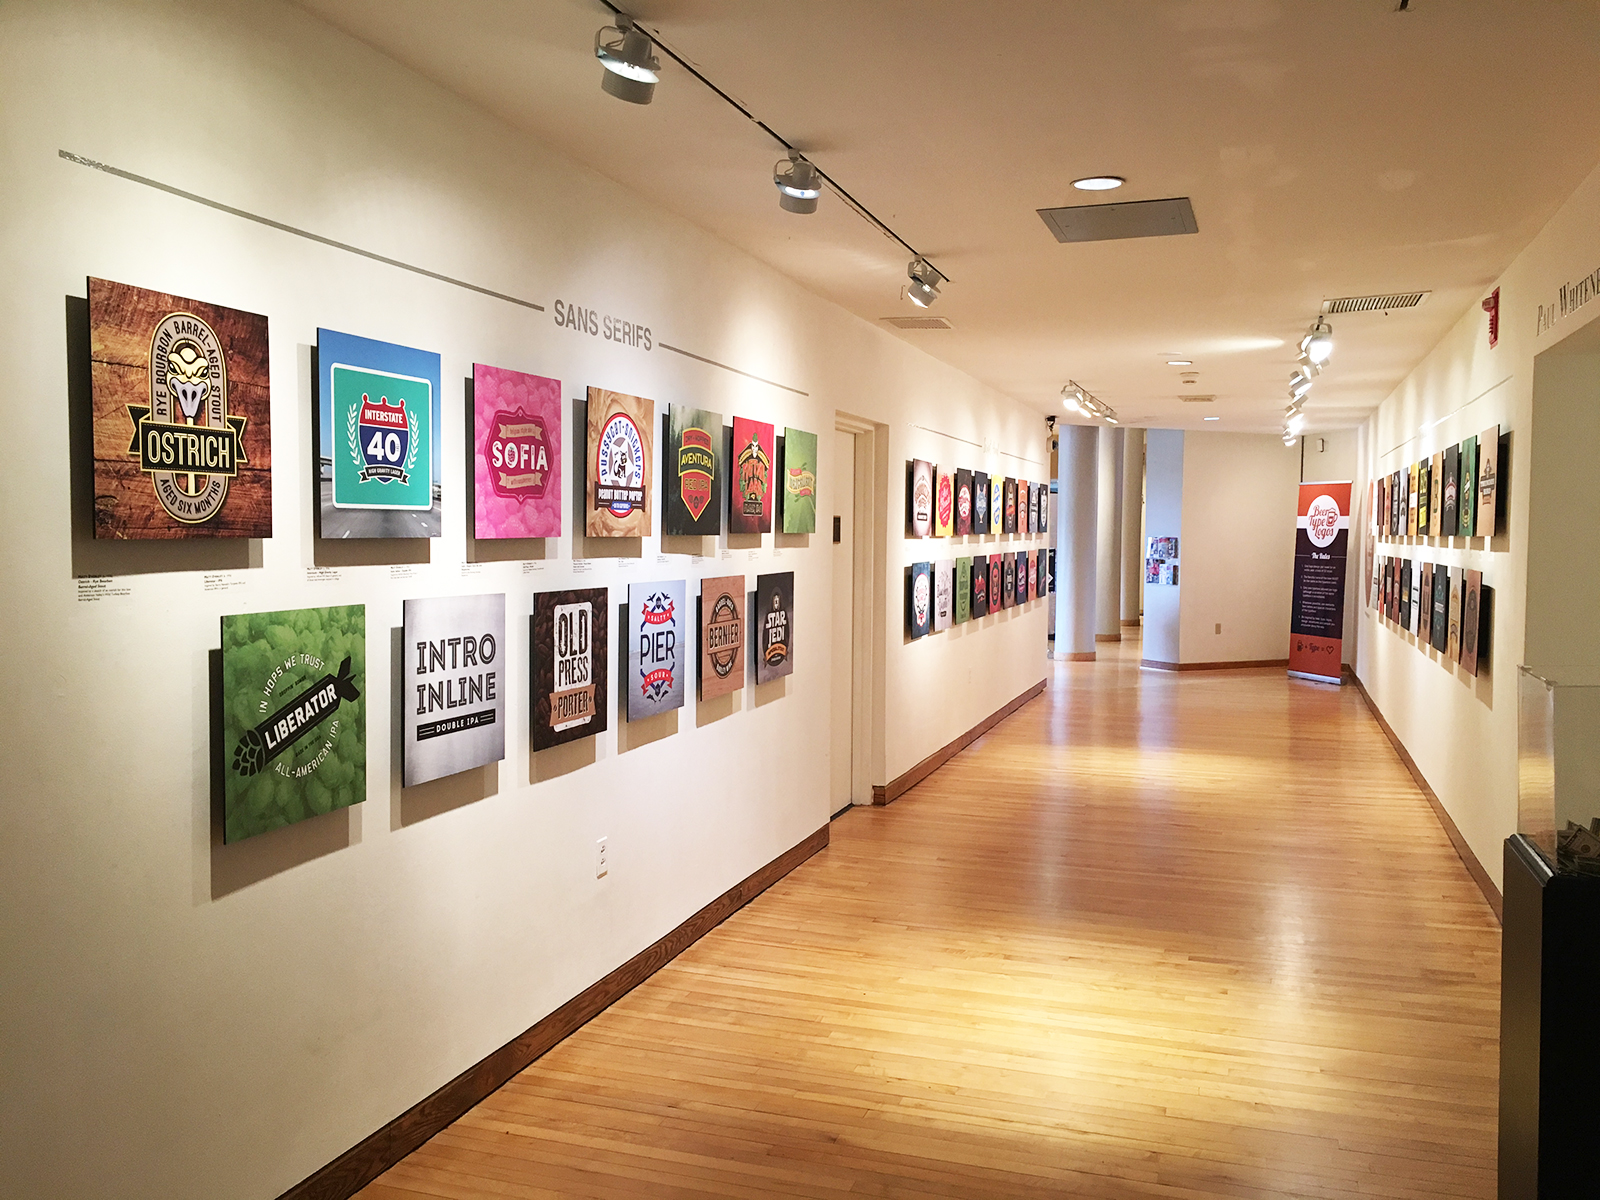 Beer Logos Inspire Art Exhibition in North Carolina